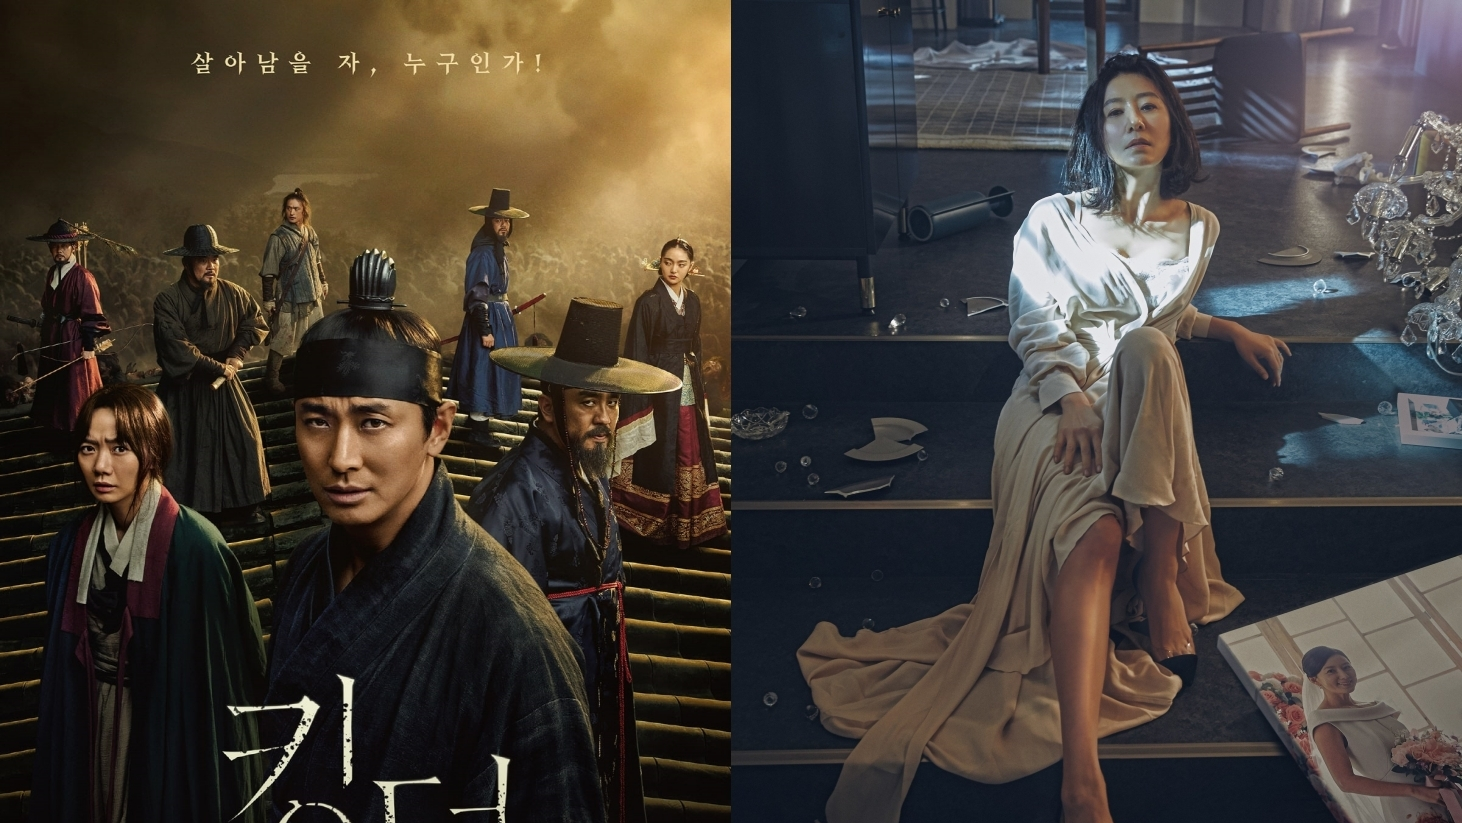 'Kingdom S2' Till 'The World of the Married' Wins Trophy at '2020 Asia Contents Awards'